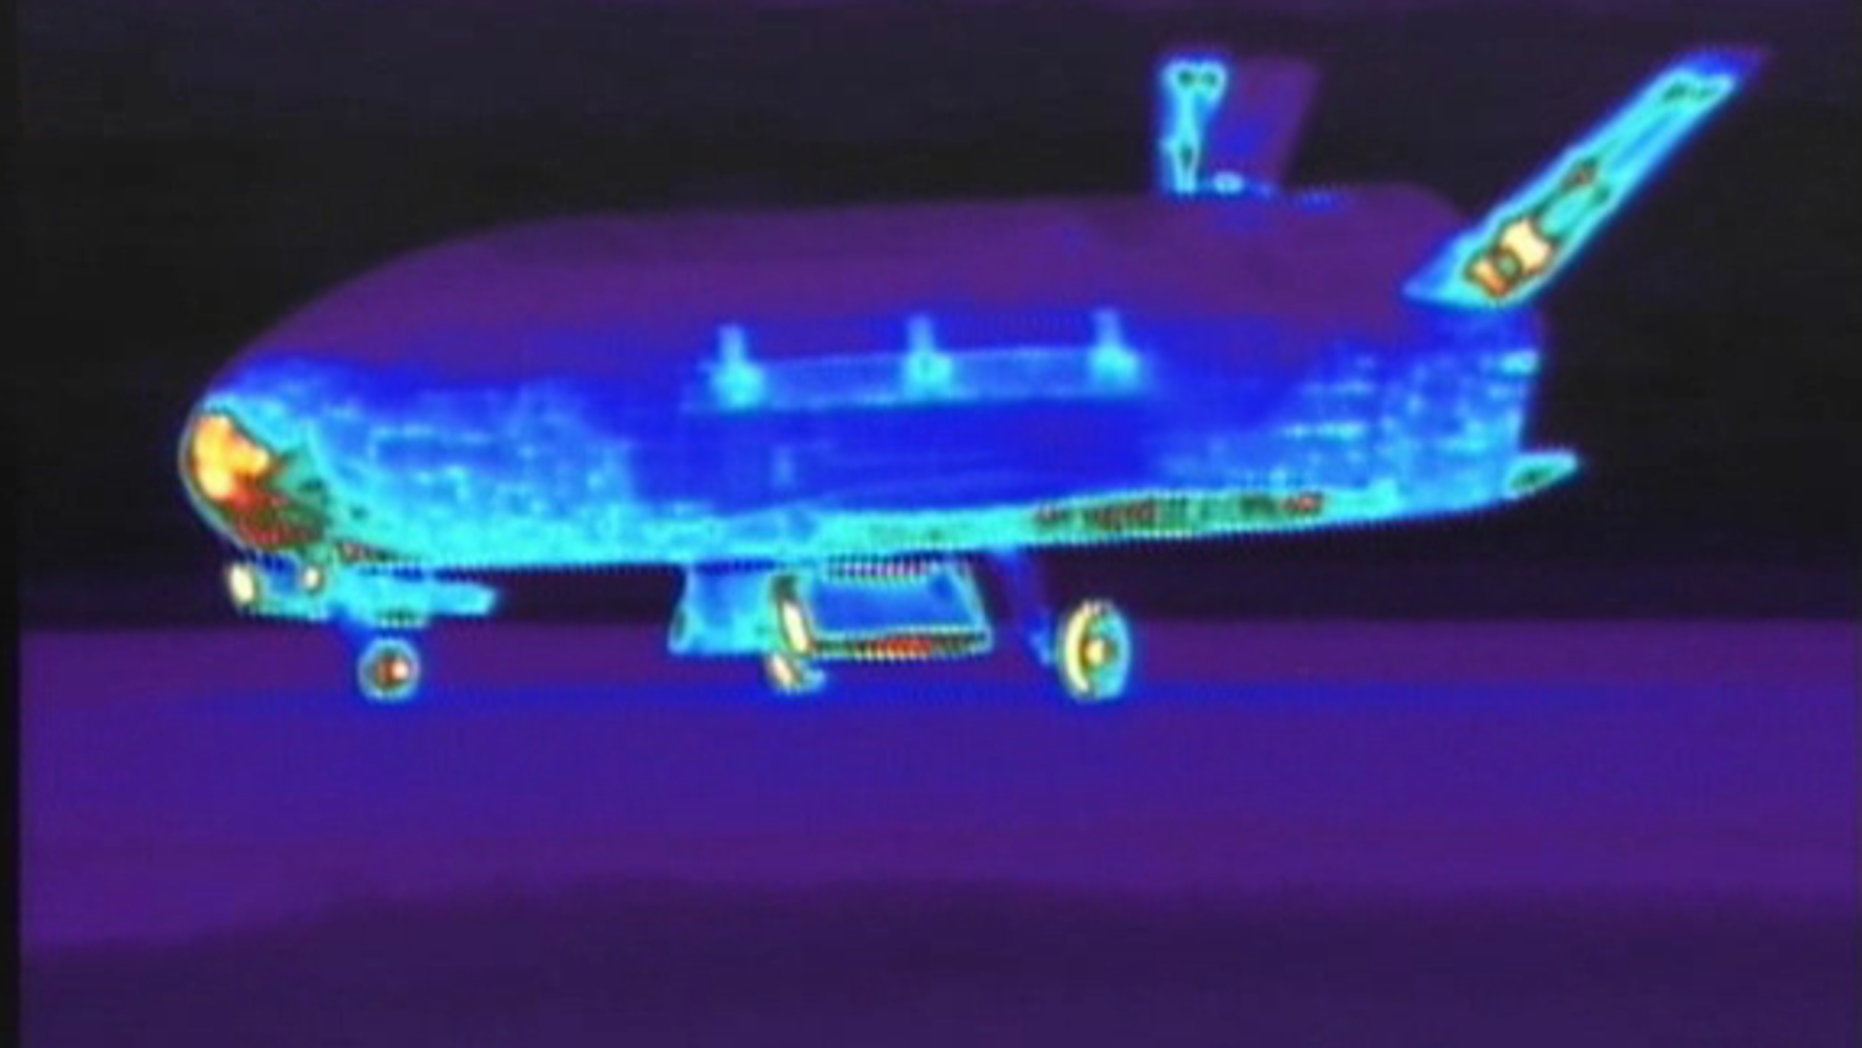 This infrared view of the U.S.'s Air Force secret X-37B space plane was taken shortly after it landed at Vandenberg Air Force base on June 16, 2012.